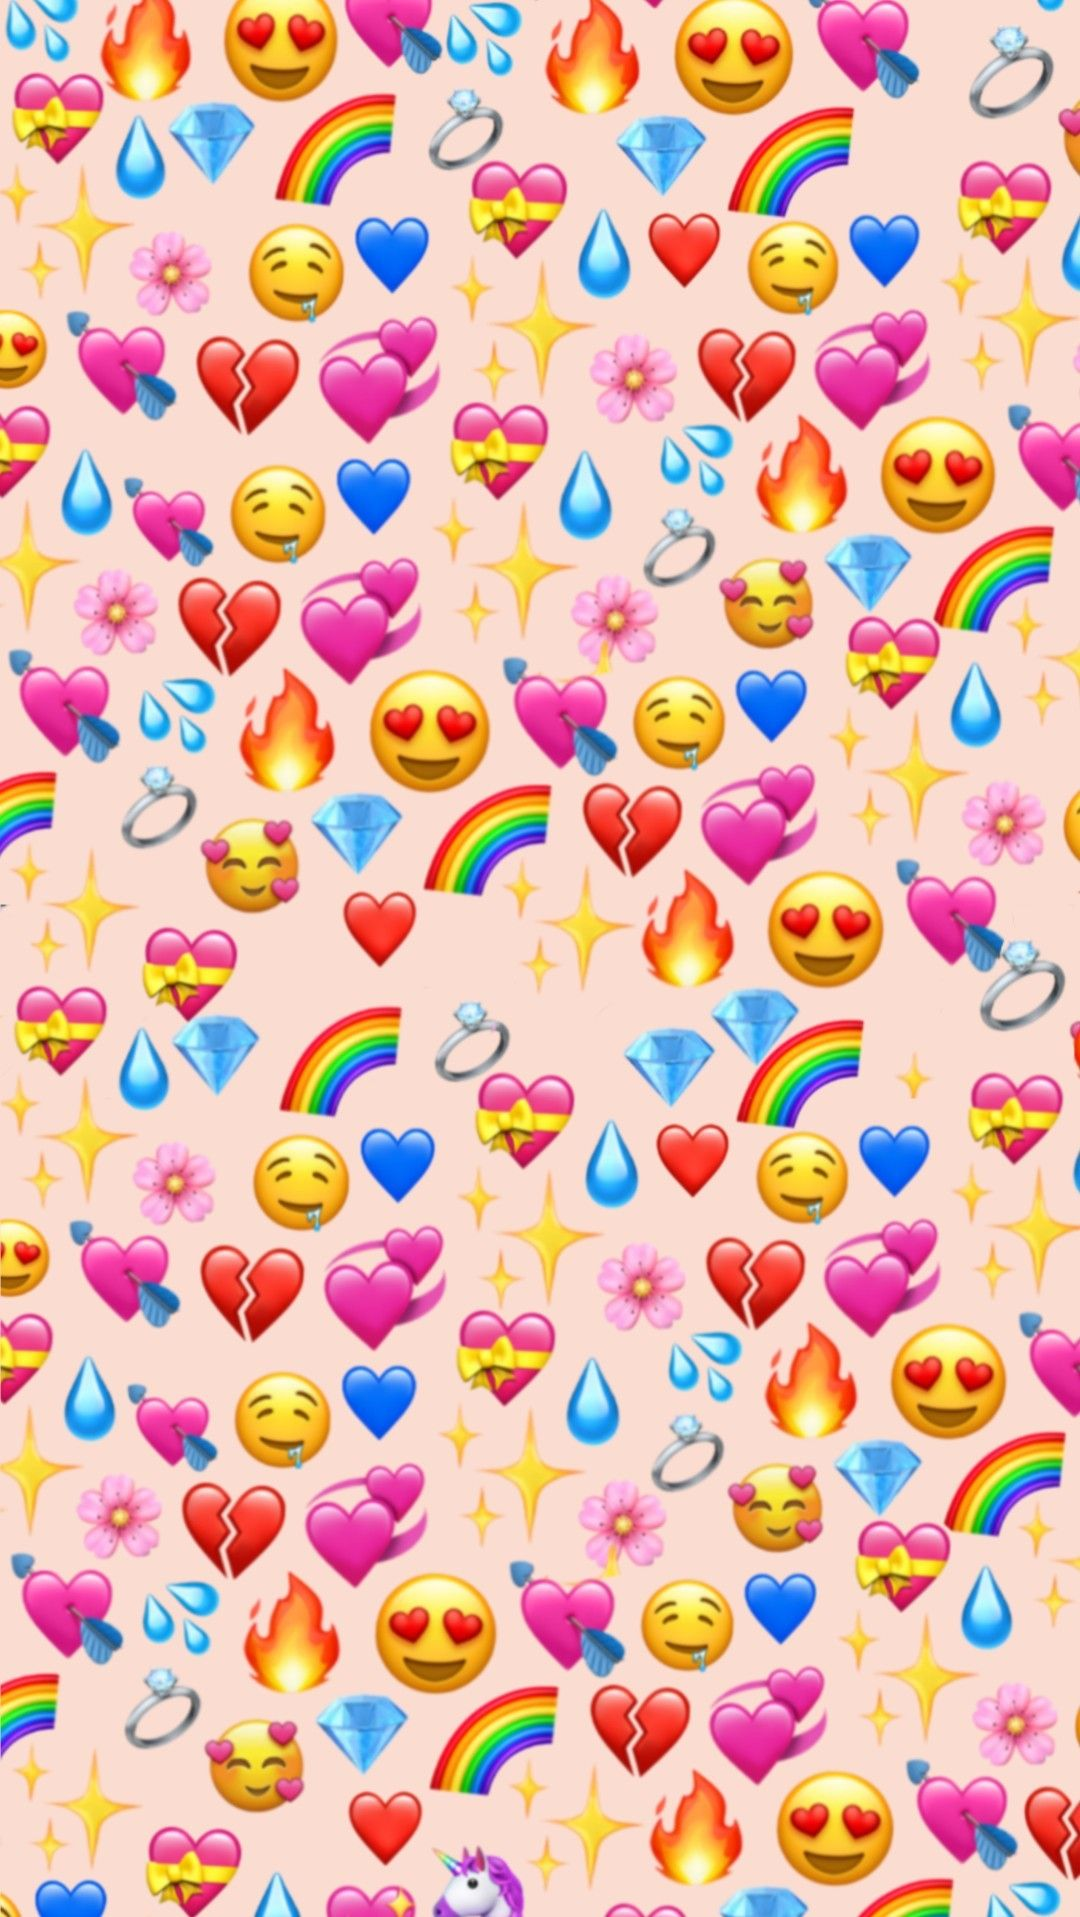 Wallpaper emoji Emoji wallpaper iphone, Cute emoji